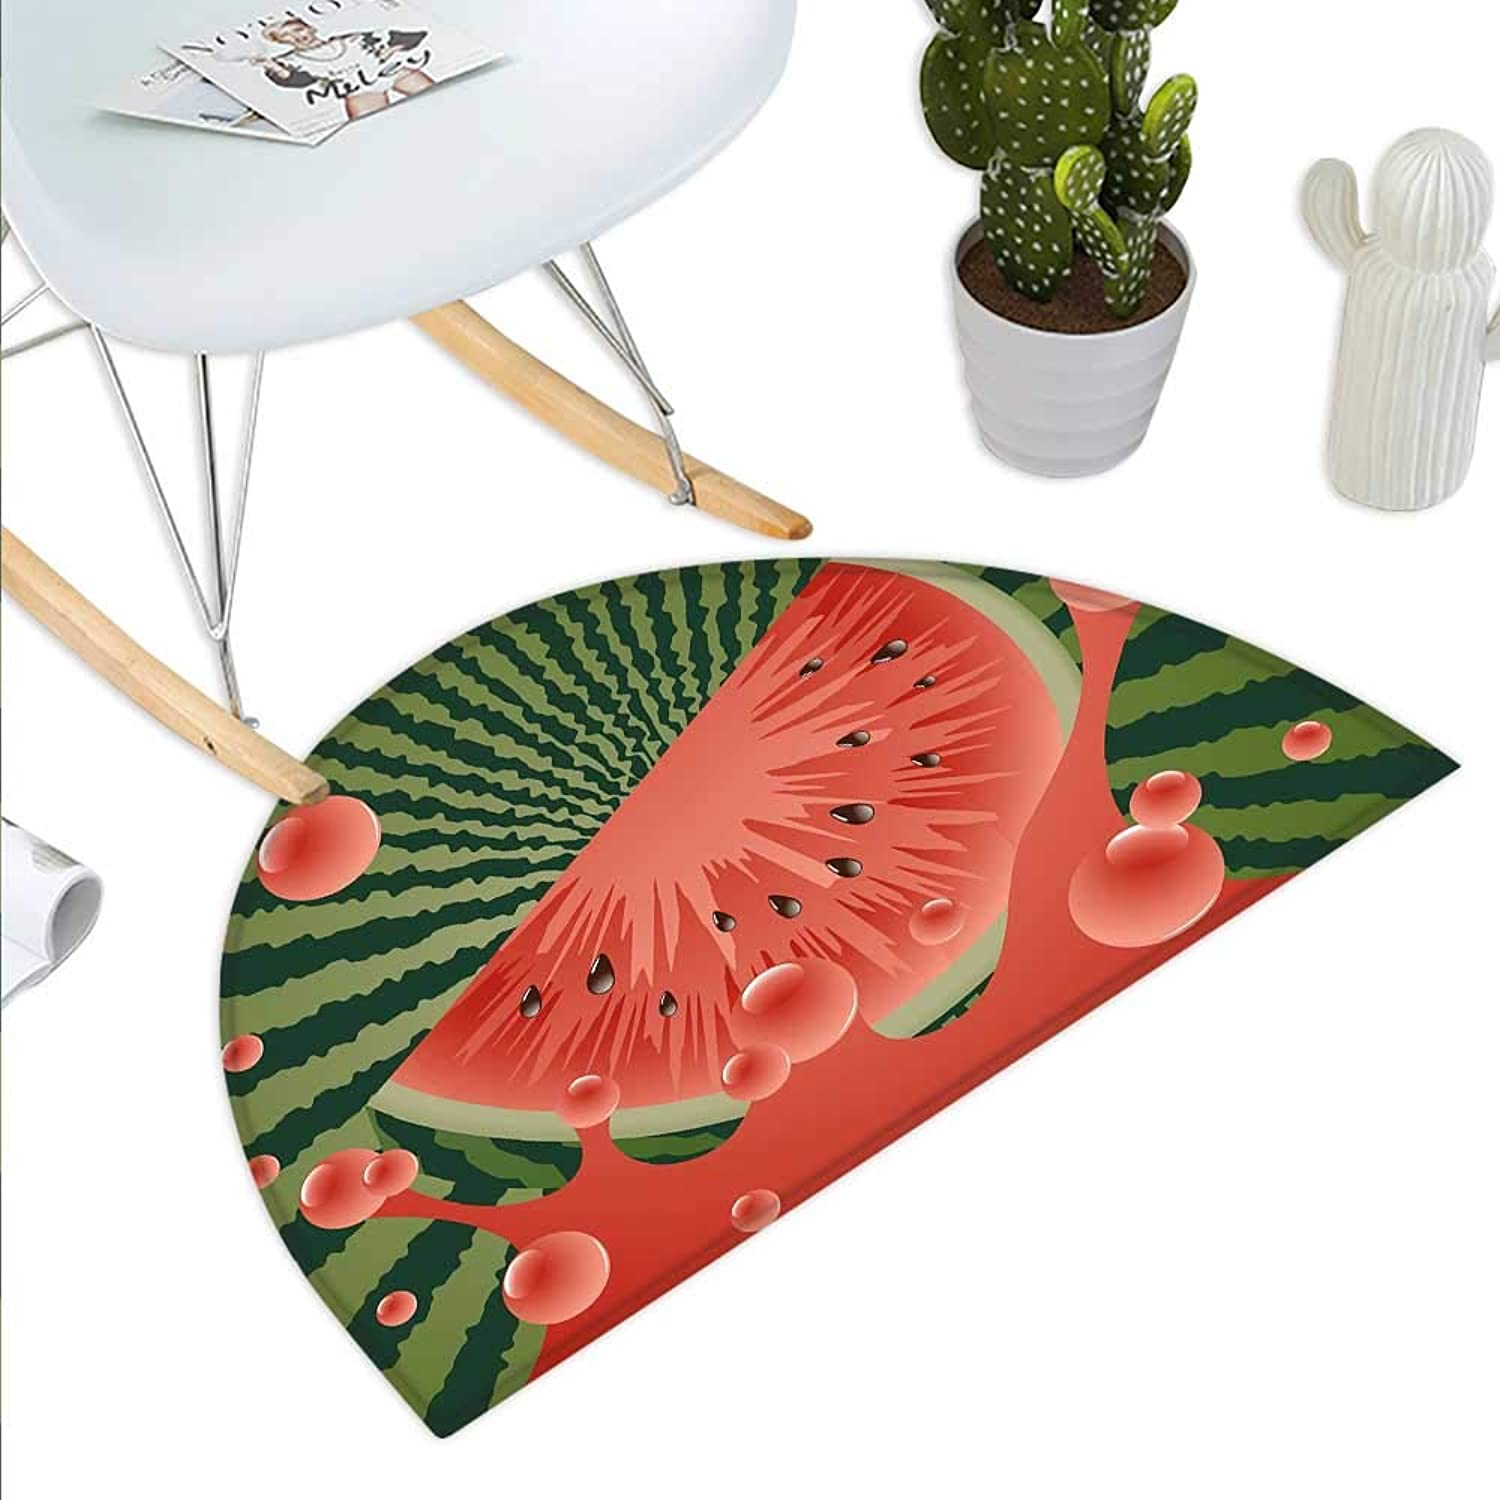 Summer Semicircle Doormat Beach Fruit Vegetarian Garden Health Life Hot Season Image Halfmoon doormats H 43.3  xD 64.9  Olive Green Dark Coral Hunter Green